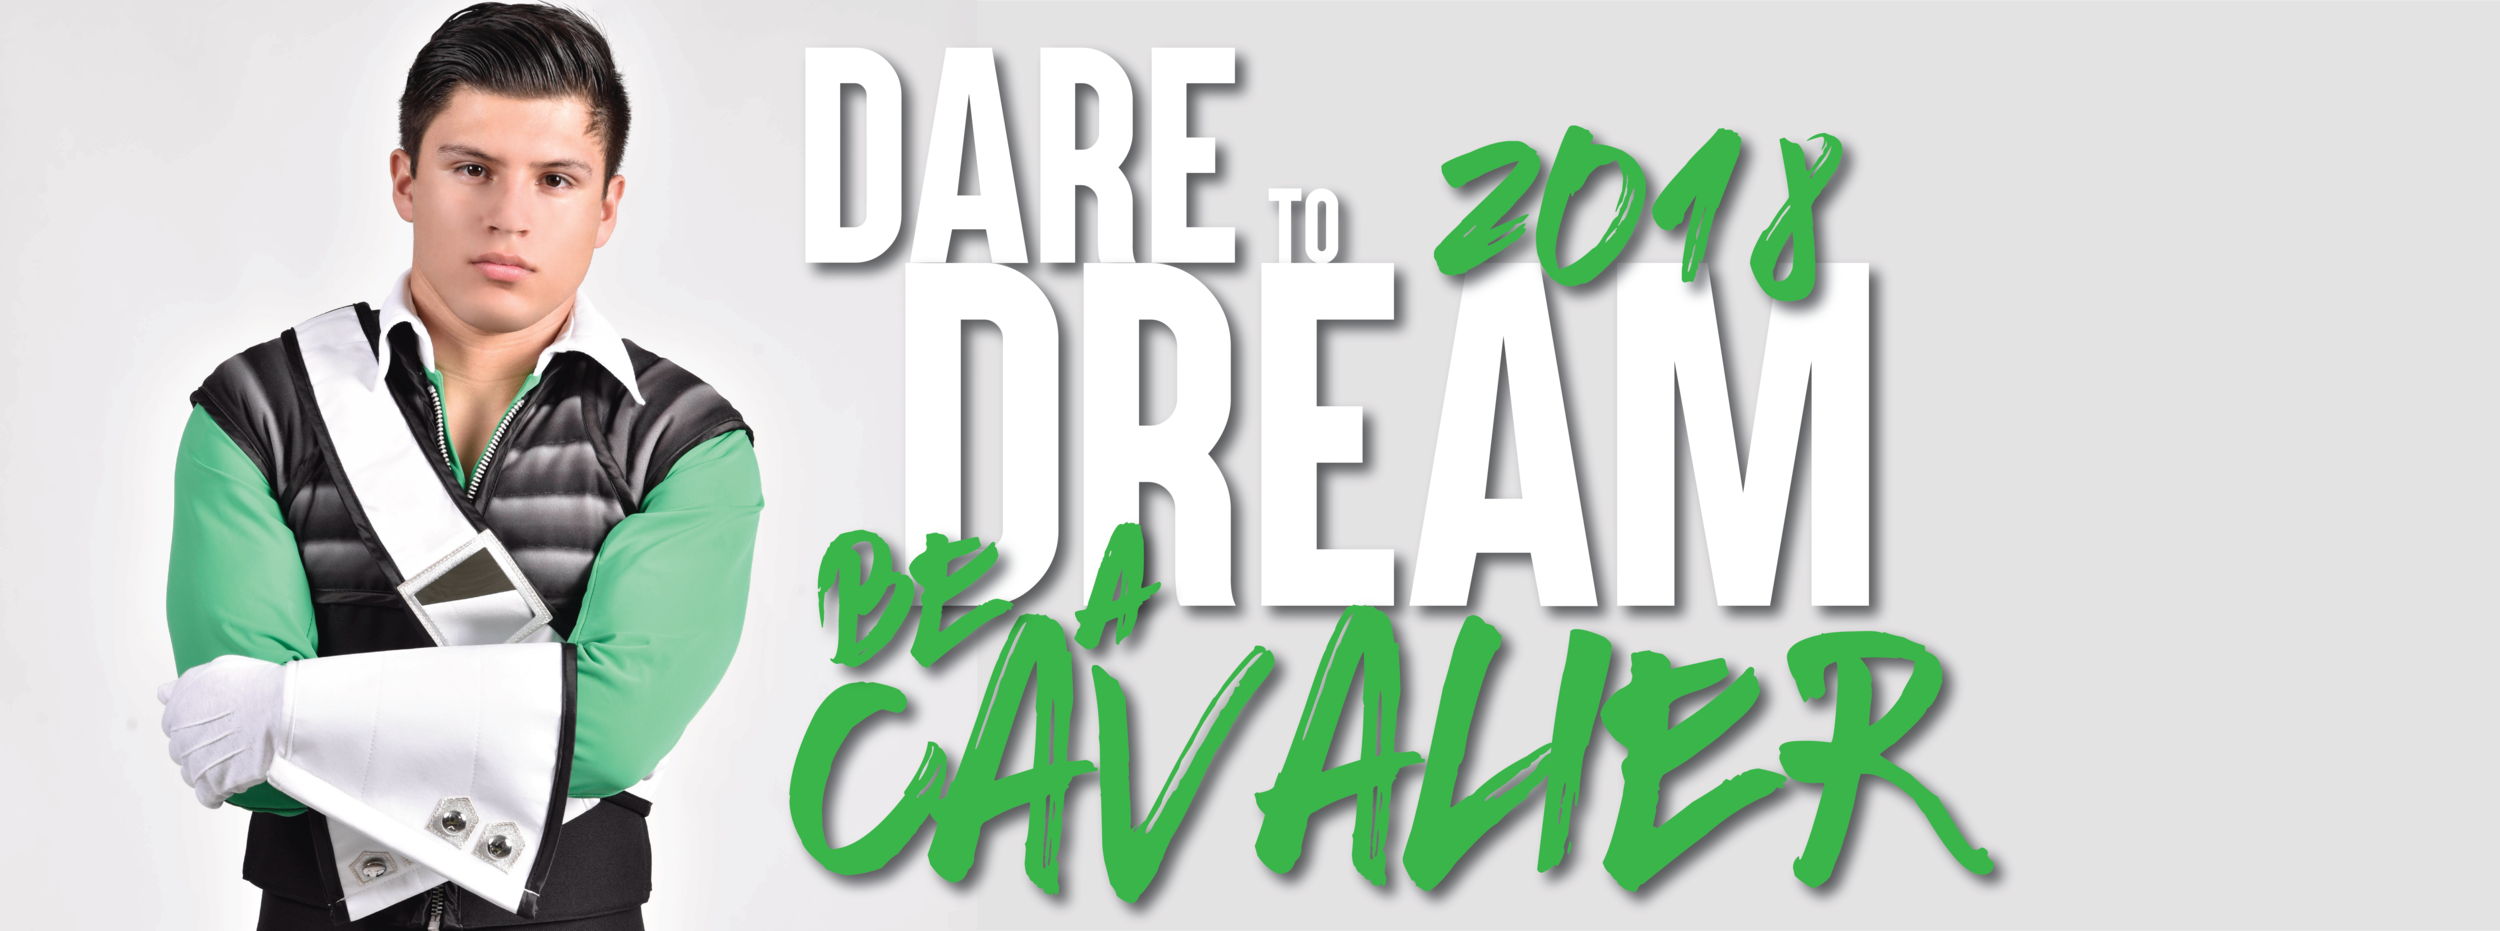 Cavaliers Audition Banner (CAV) 1920X600-01.png